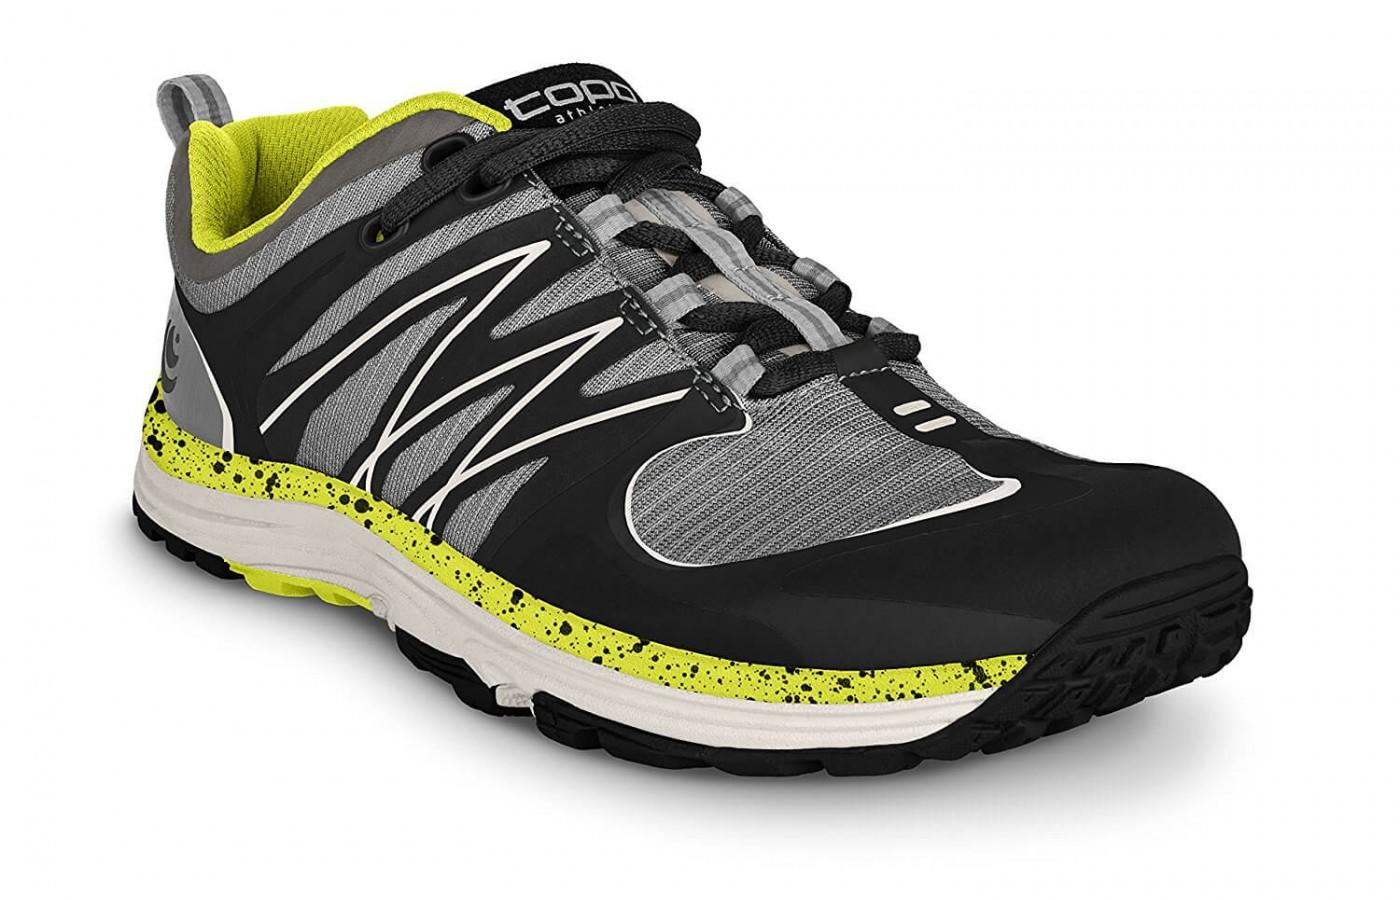 the Topo Athletic MT-2 is a lightweight trail running shoe that offers excellent breathability and performance while on the trail